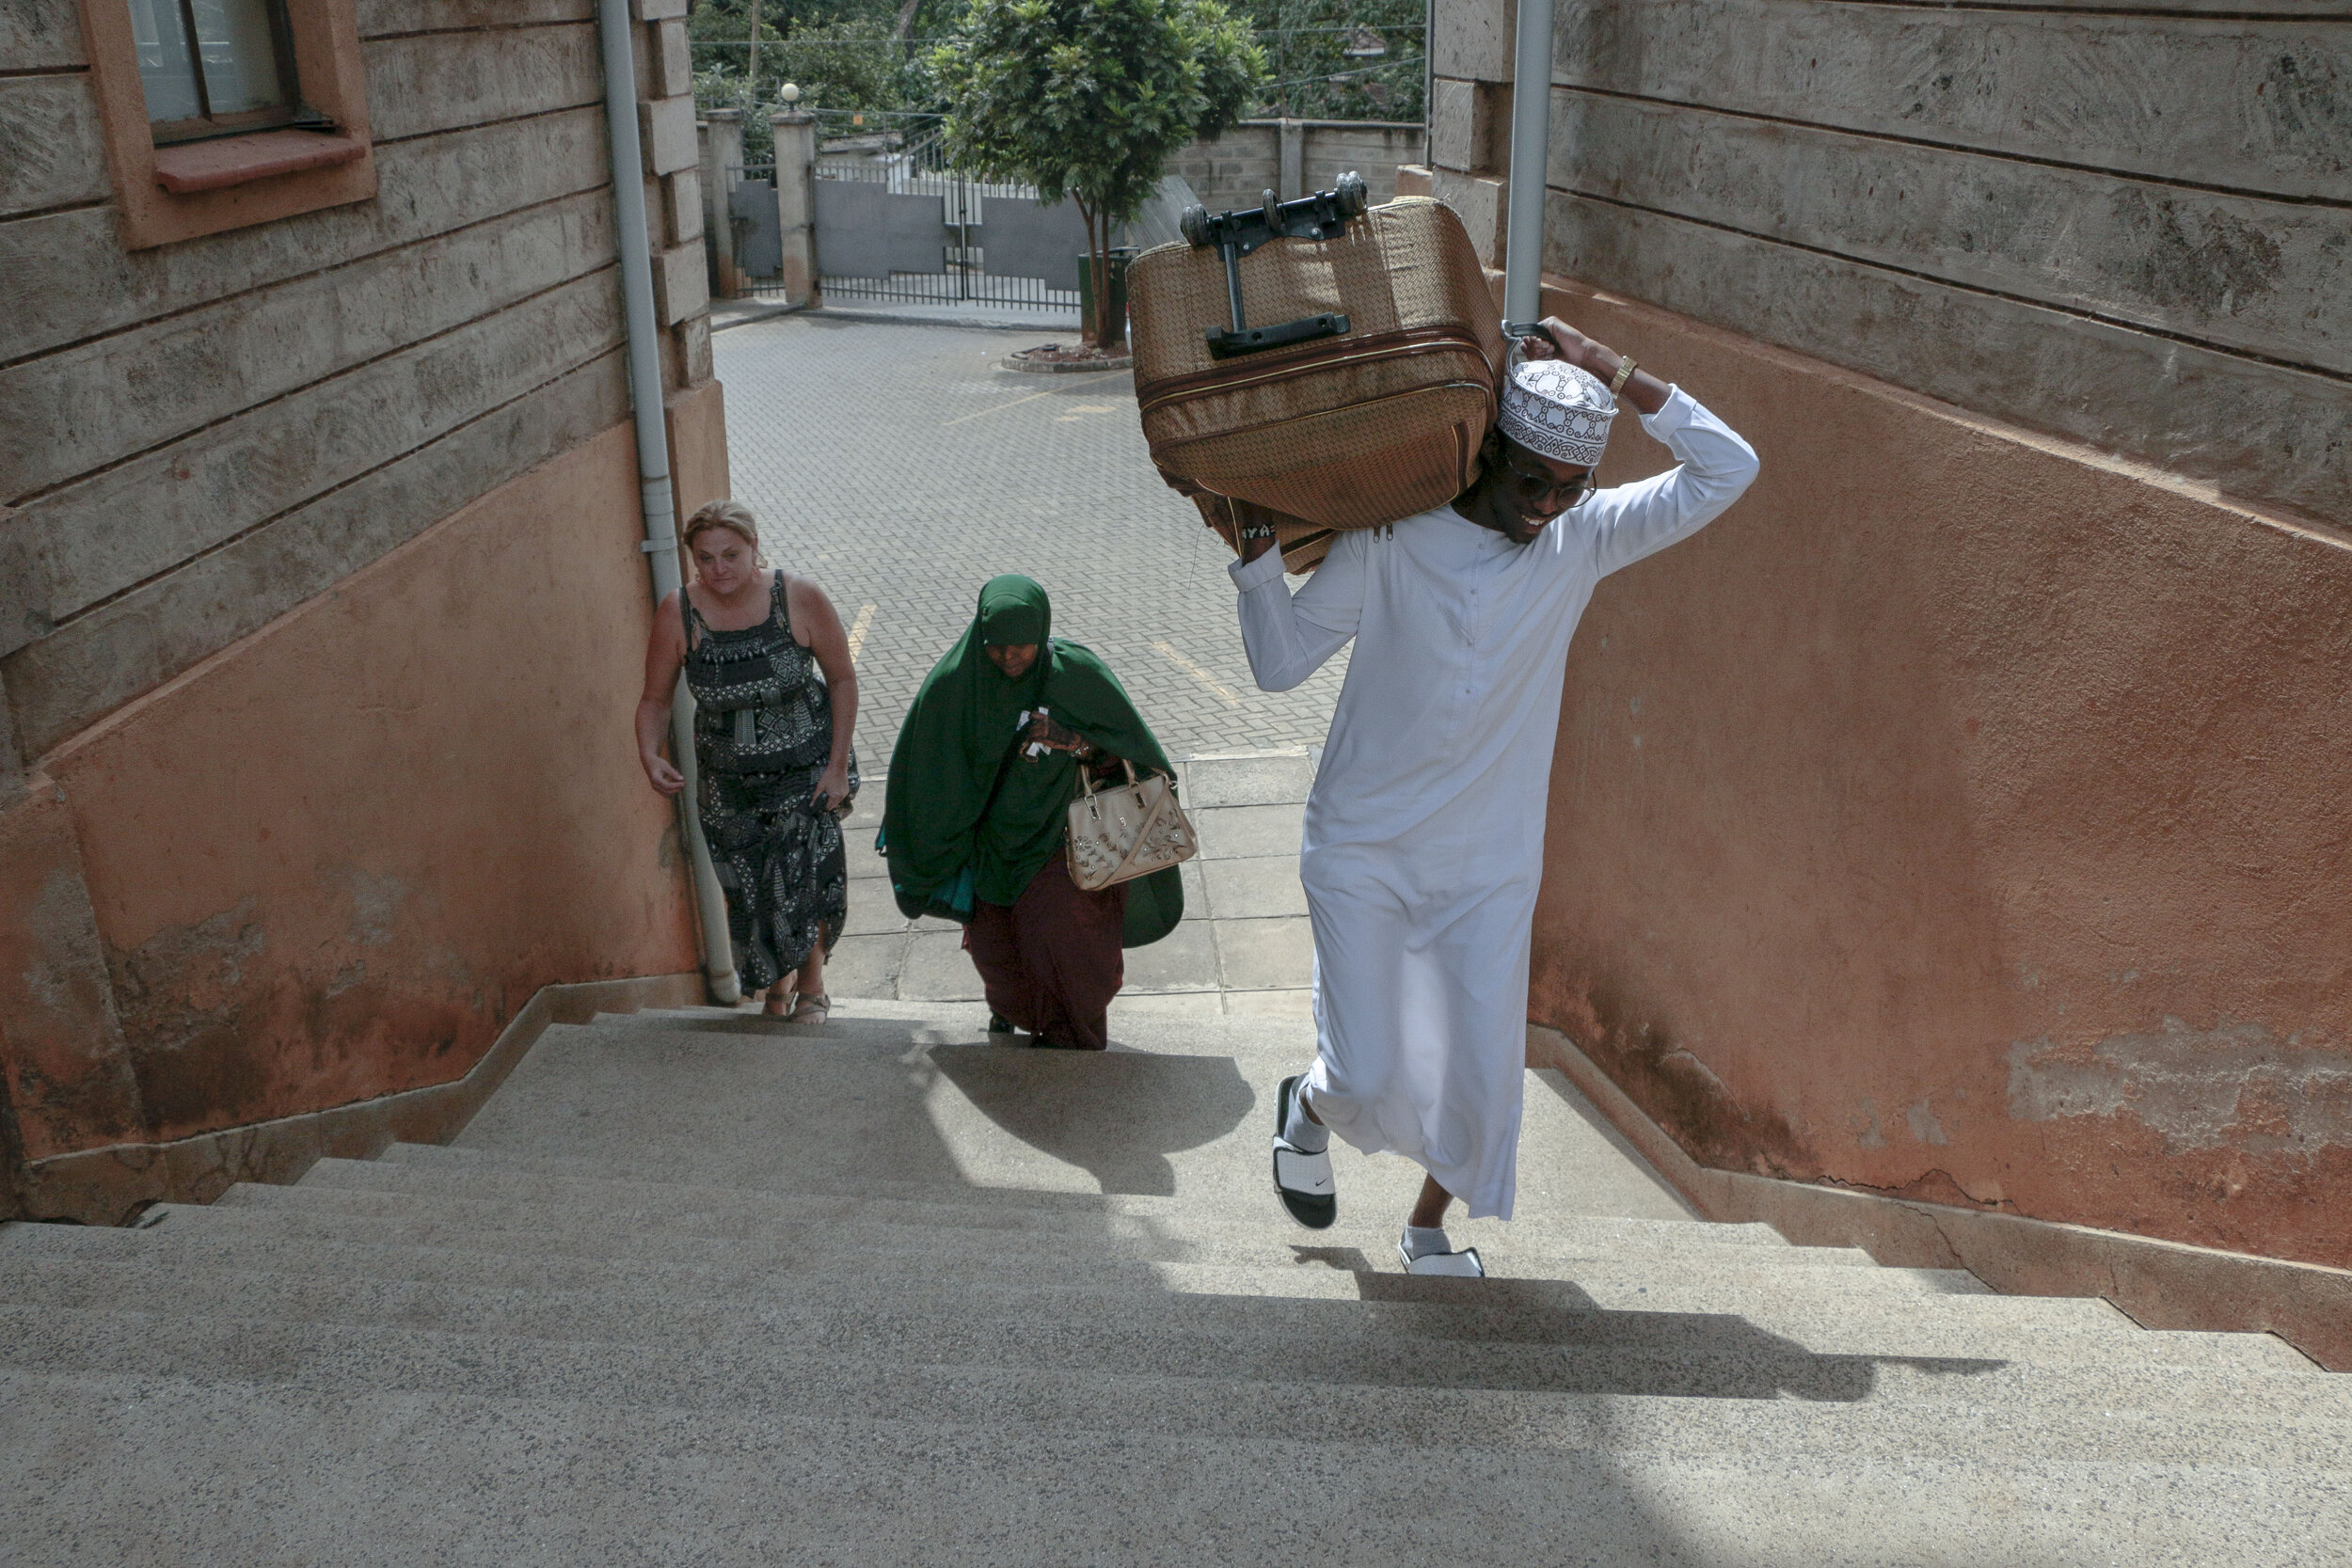 Khalid Ahmed, Kosar's cousin, helps lift a suitcase up the steps while Hamdi Kosar and Jessica Rohloff follow Aug. 23 in Nairobi. Kosar had met Ahmed just several days before and has many family members that she has never met after being resettled to the U.S.